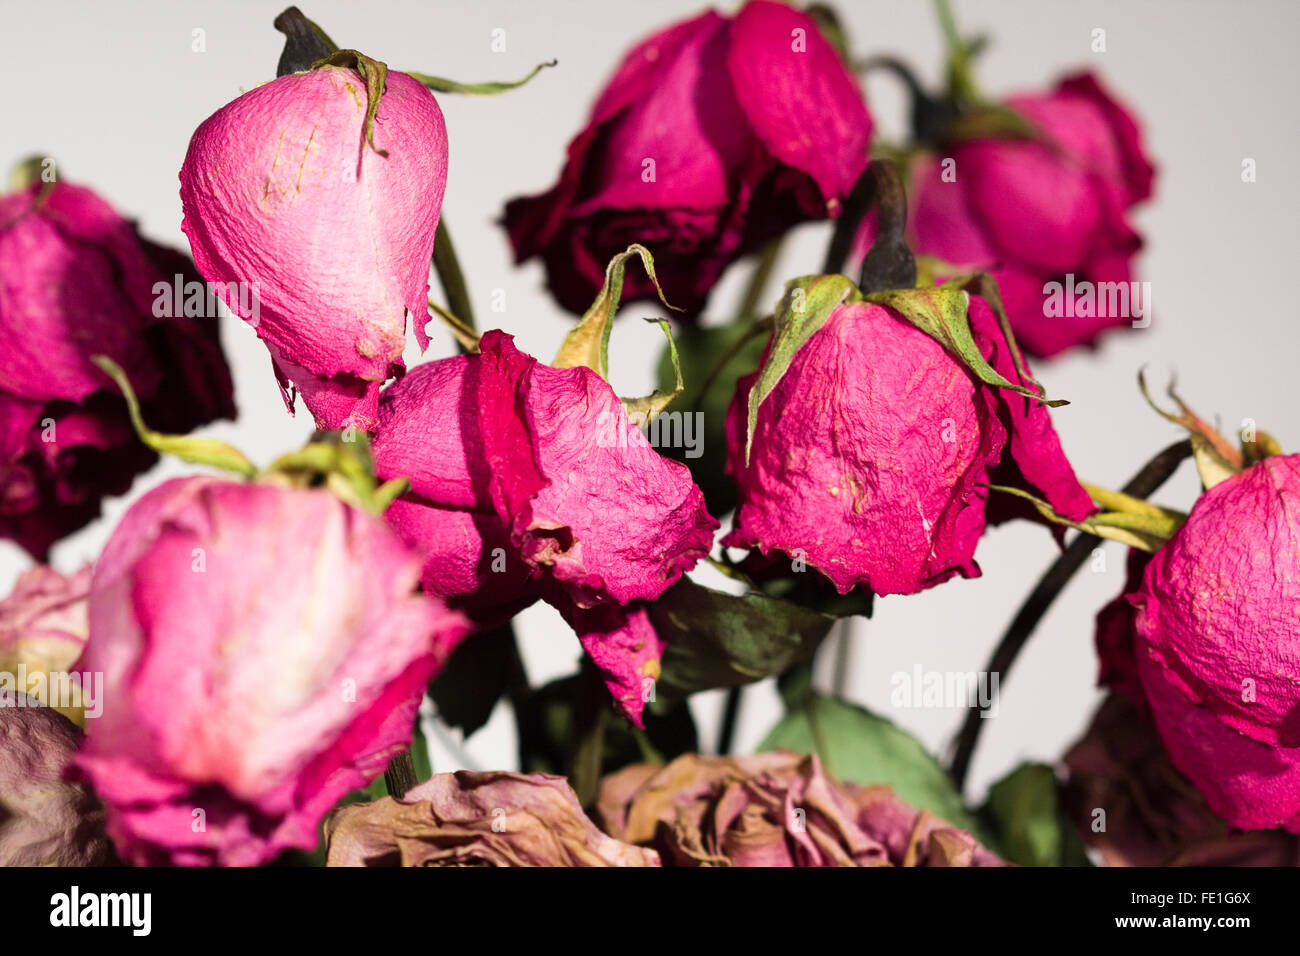 Dead and dried red rose petals and stems - Stock Image